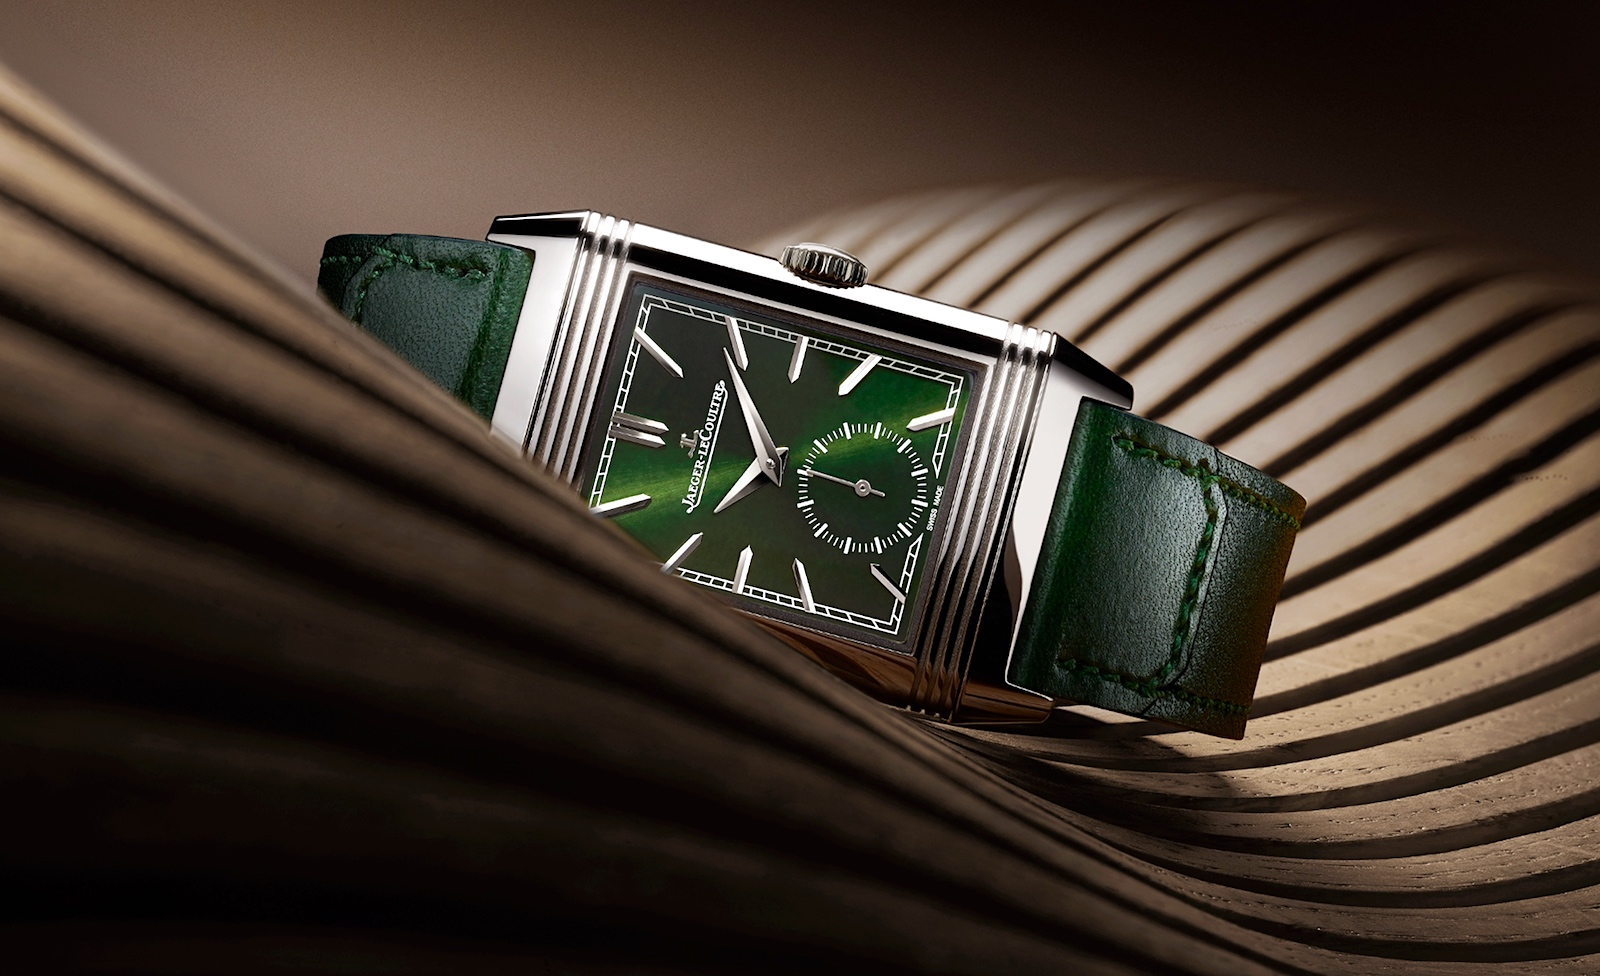 Jaeger-LeCoultre en Watches and Wonders 2021 - Reverso green